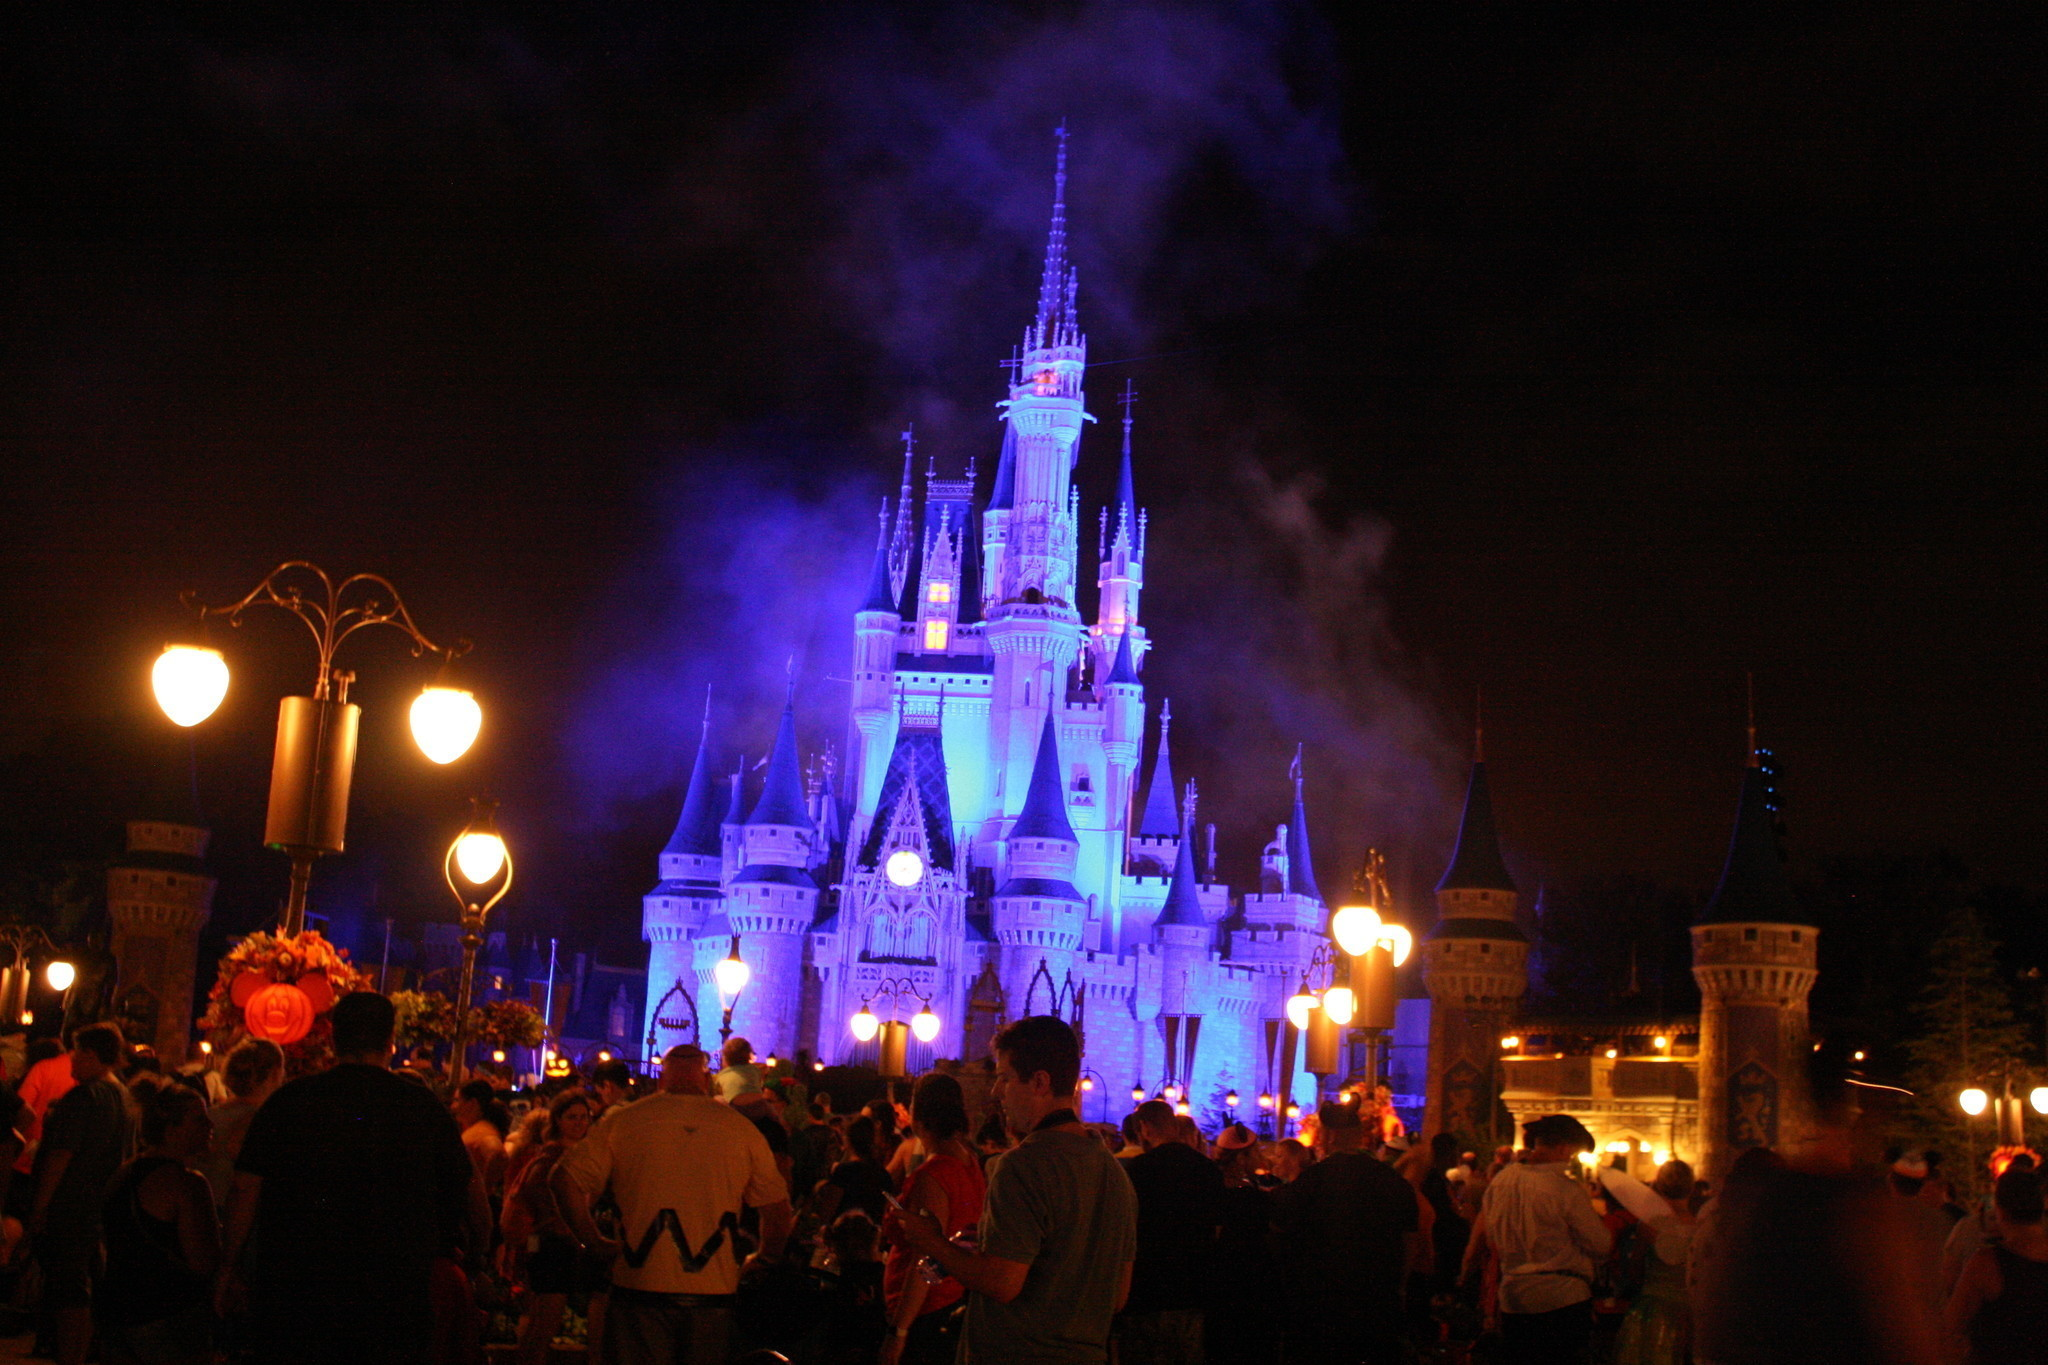 pictures: mickey's not-so-scary halloween party 2015 - orlando sentinel